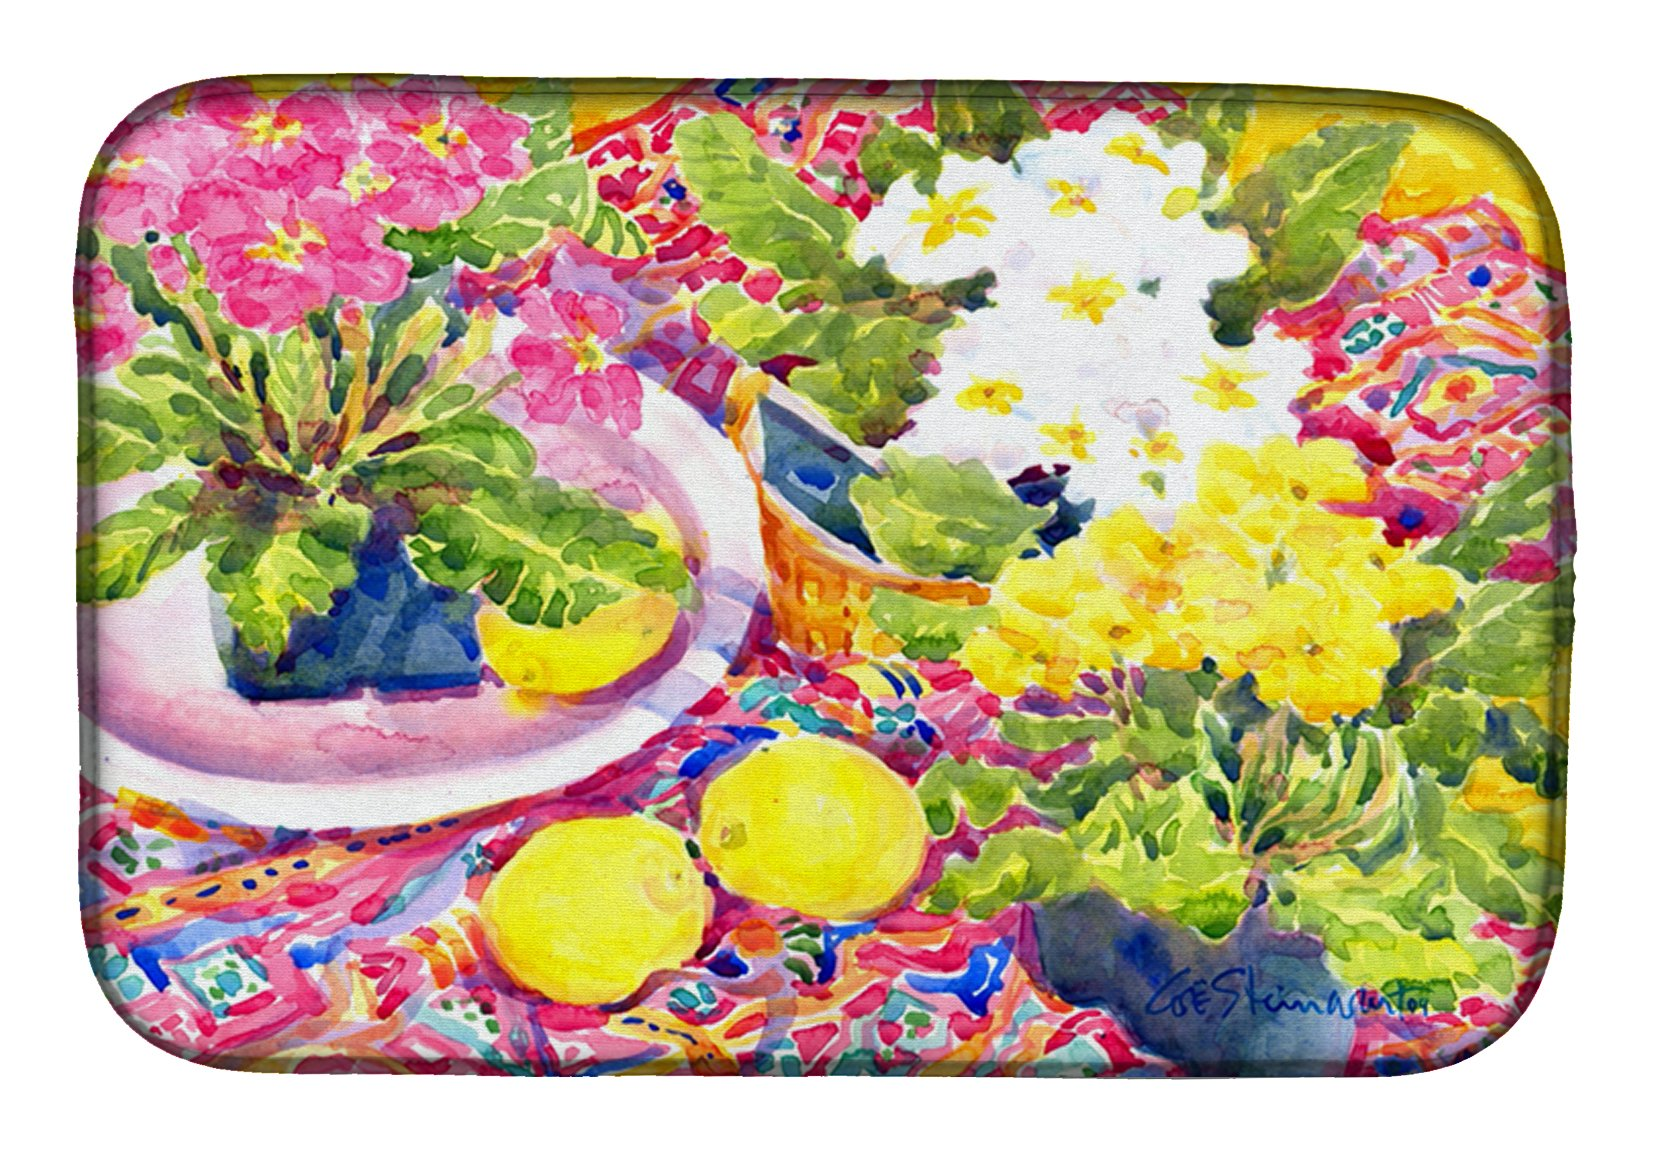 Flower - Primroses Dish Drying Mat 6062DDM by Caroline's Treasures